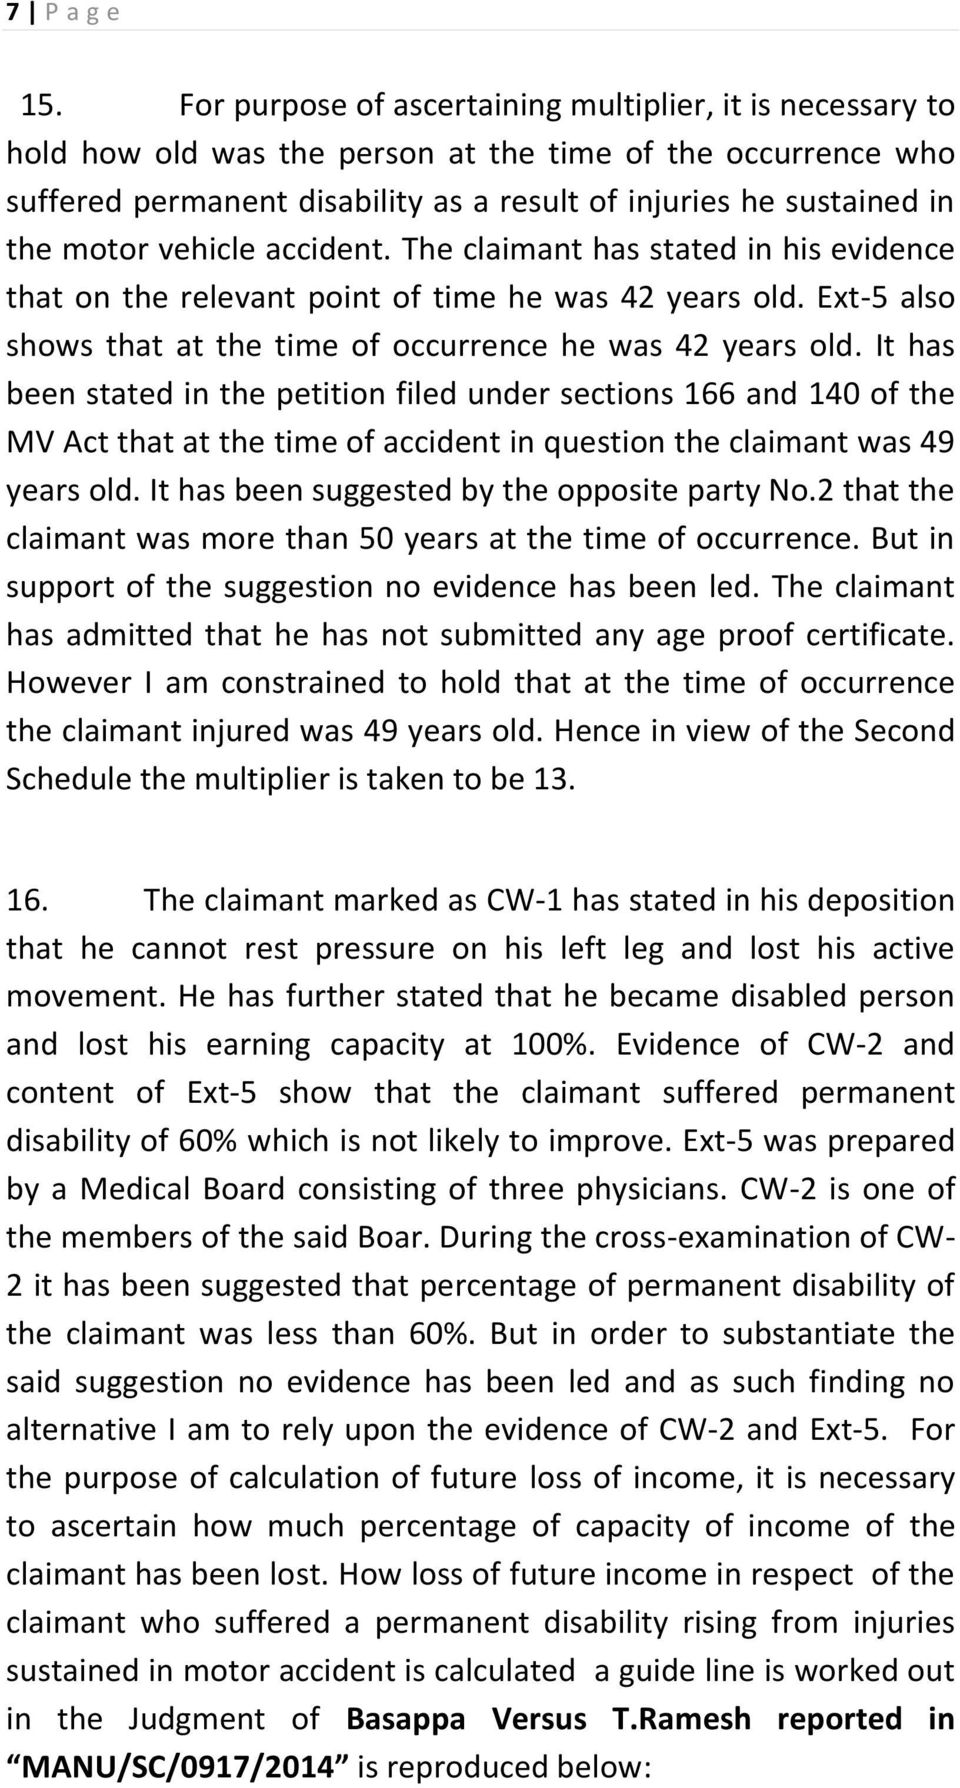 motor vehicle accident. The claimant has stated in his evidence that on the relevant point of time he was 42 years old. Ext-5 also shows that at the time of occurrence he was 42 years old.